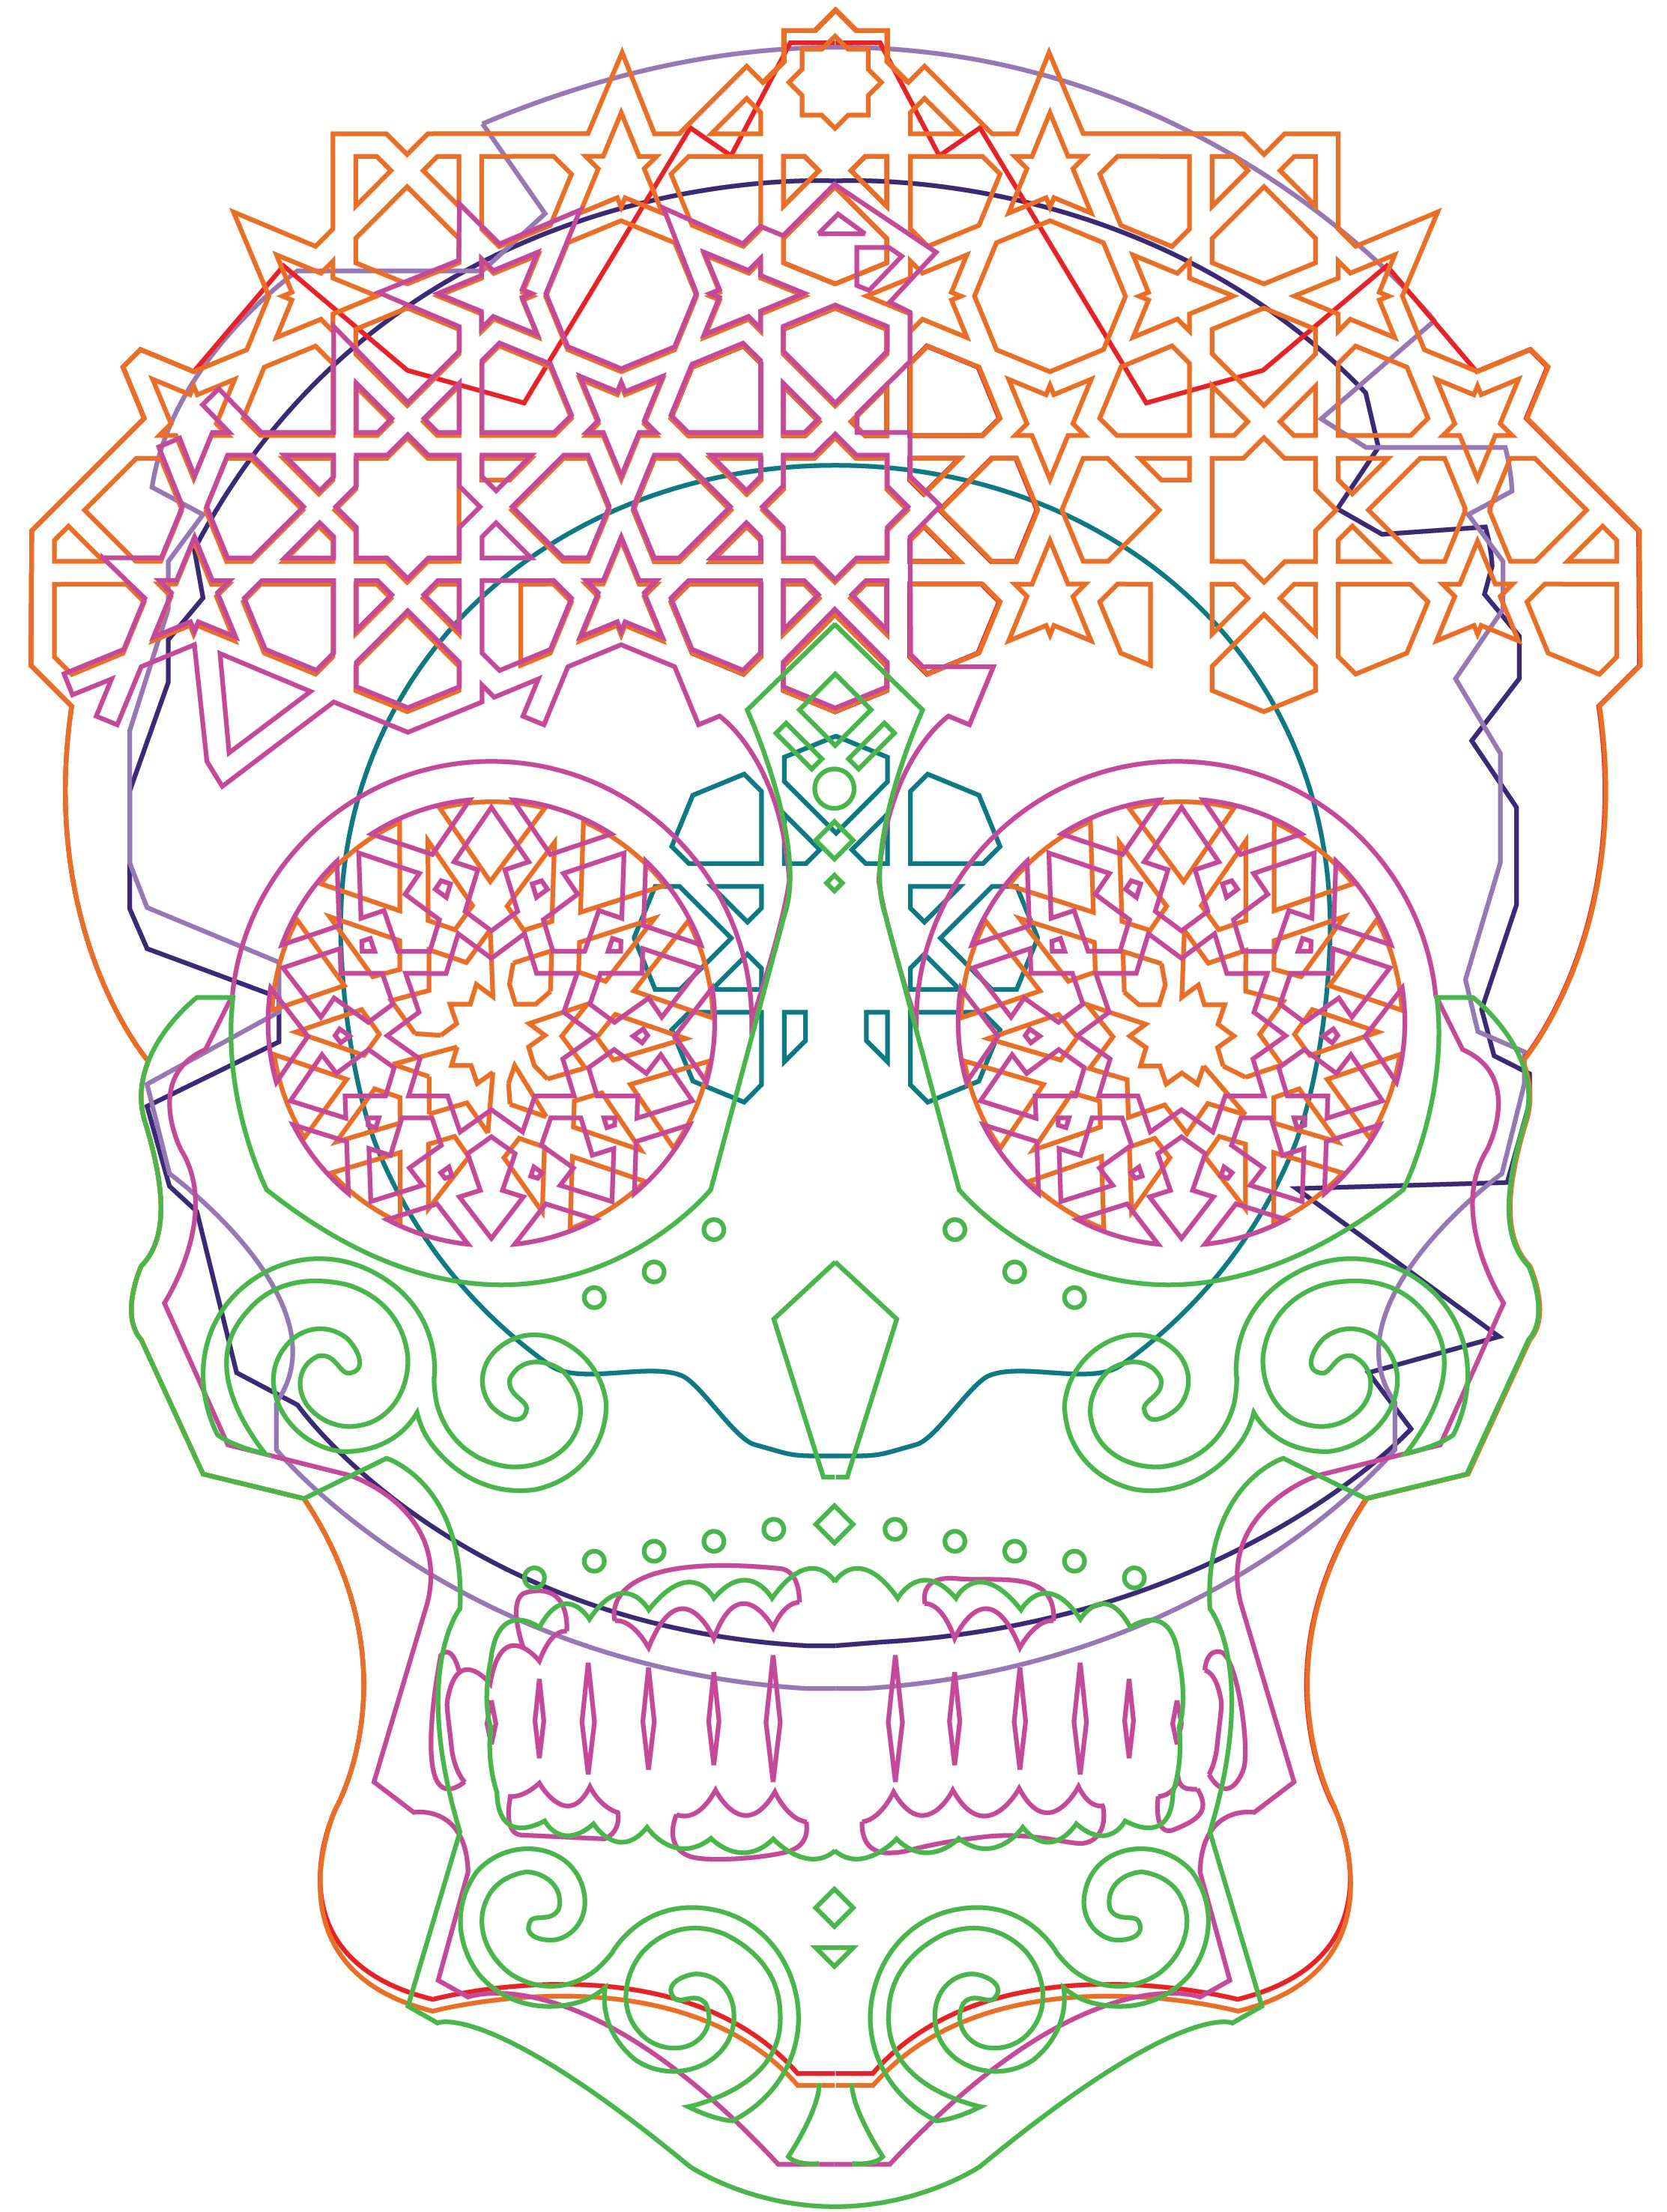 skull6-graphic-design-15THICKLINE-01